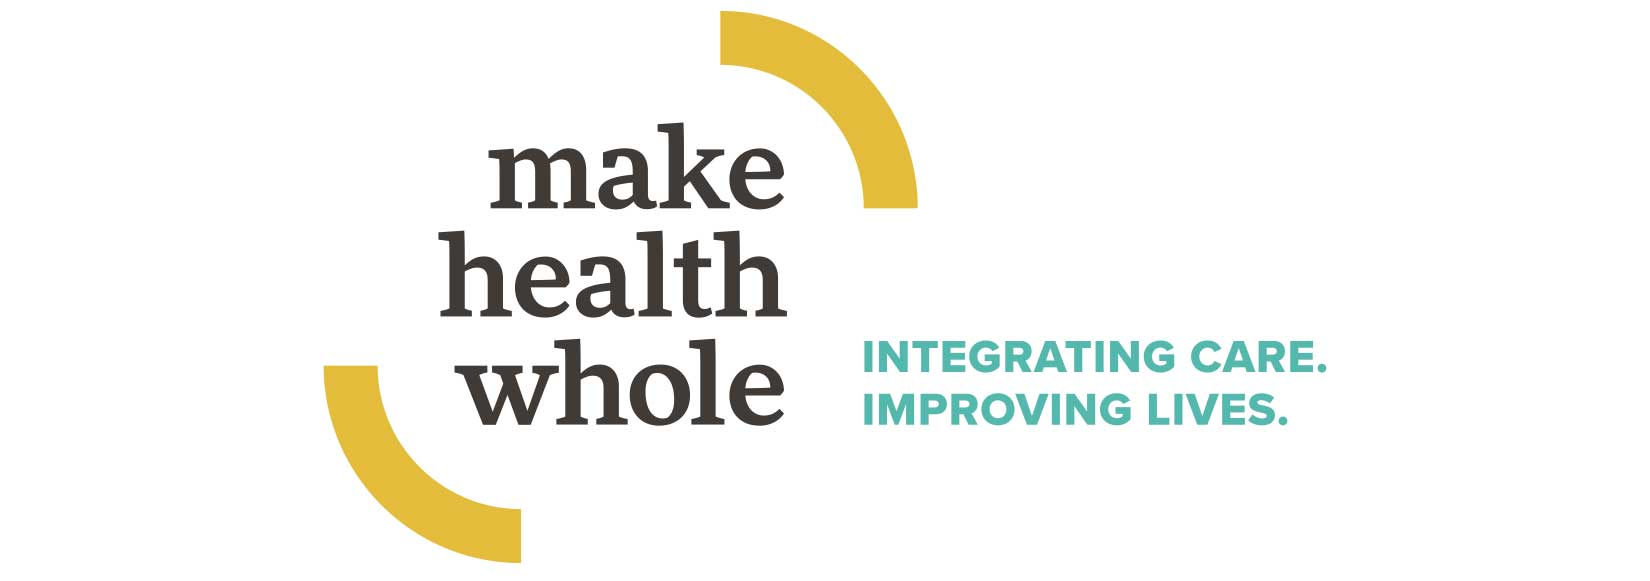 The Make Health Whole logo is comprised of a word mark set in lower case contained by two arched shapes. The lower case setting conveys approachability and accessibility, while the boldness and strong serifs emphasizes the power of the movement. The arched shapes are pieces of a circle, positioned in such a way as to communicate movement, containment, and expansiveness. Together, they make an emphatic invitation to join the movement and Make Health Whole.